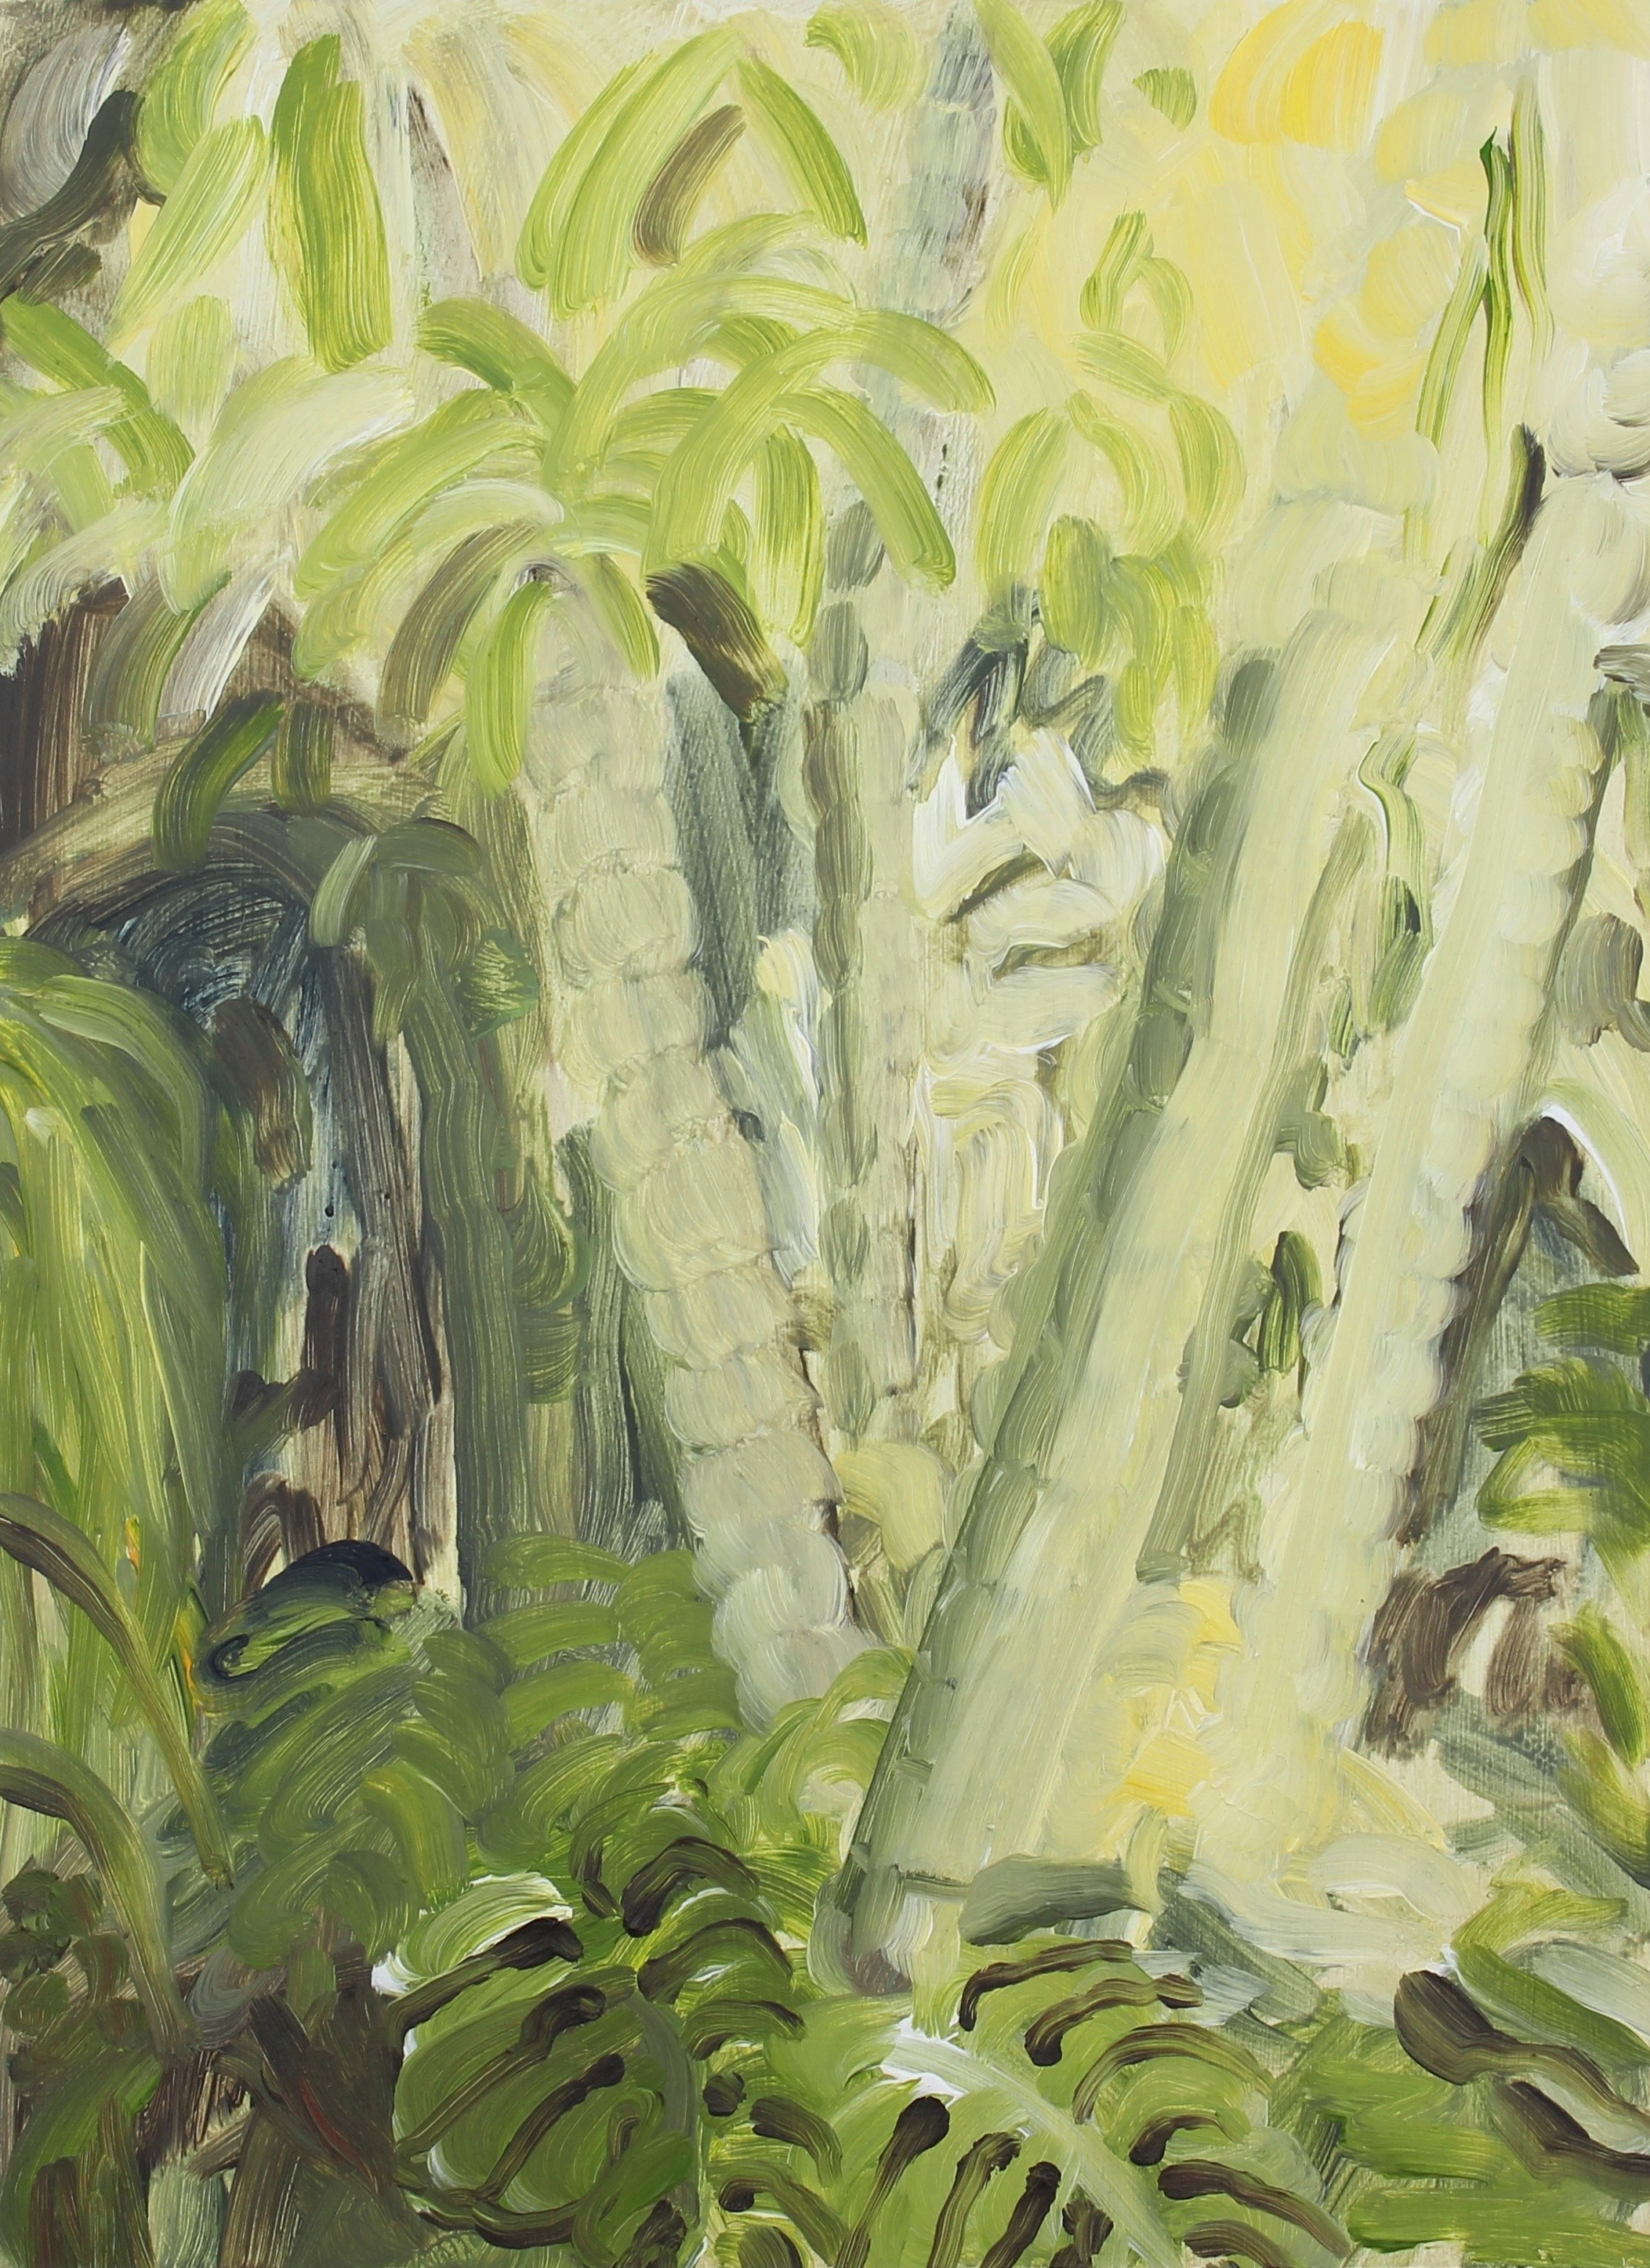 Jessica Skowroneck | Jungle morning, 2018